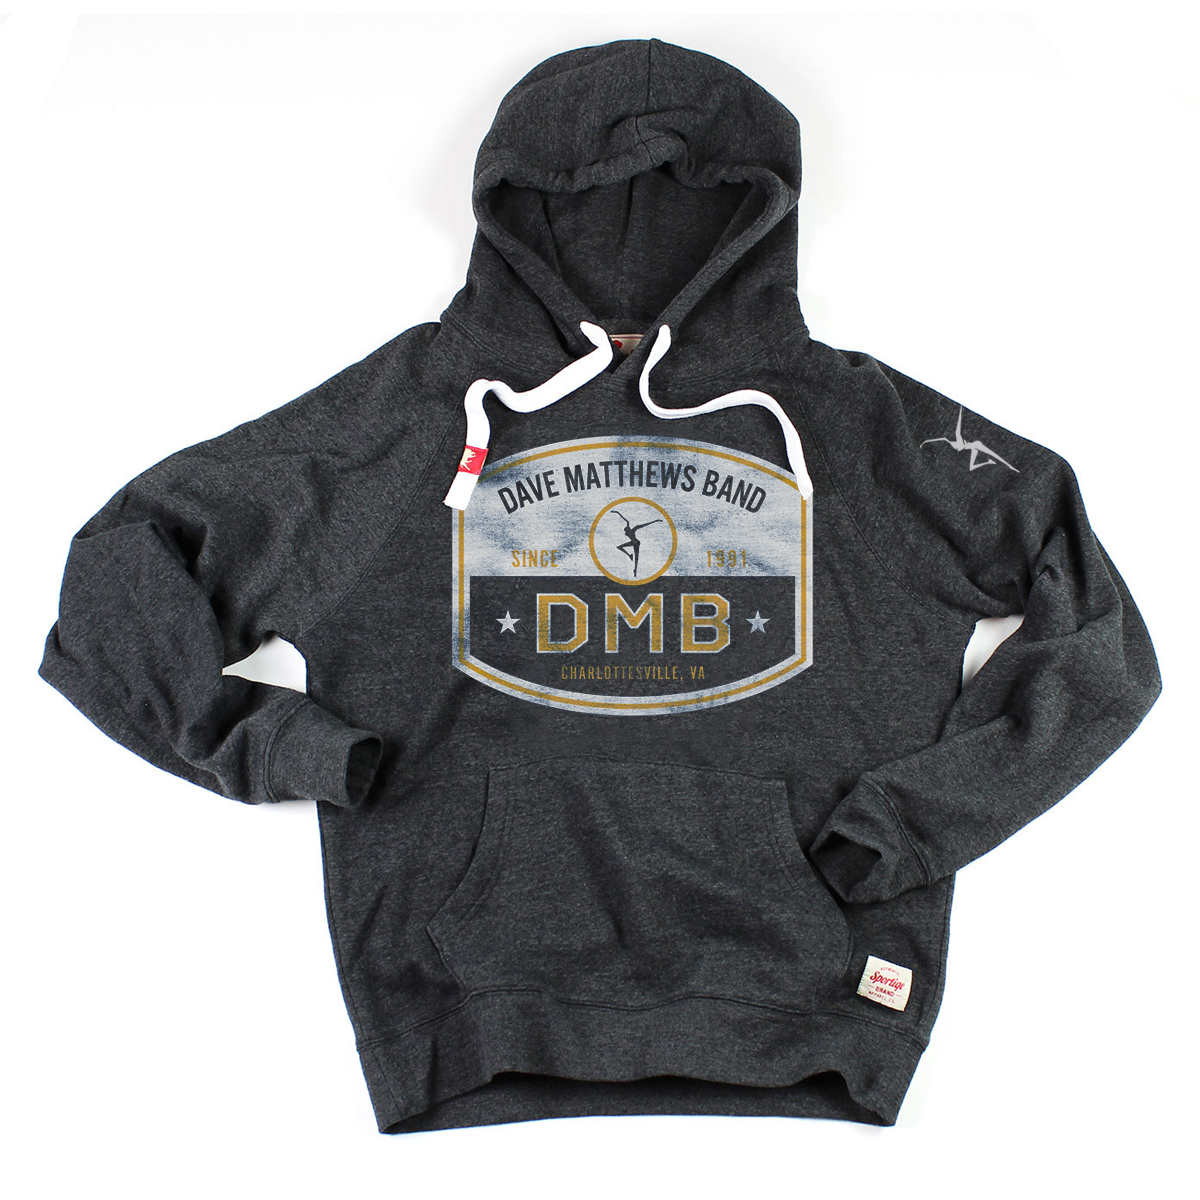 Sportiqe DMB Badge Pullover Hoody